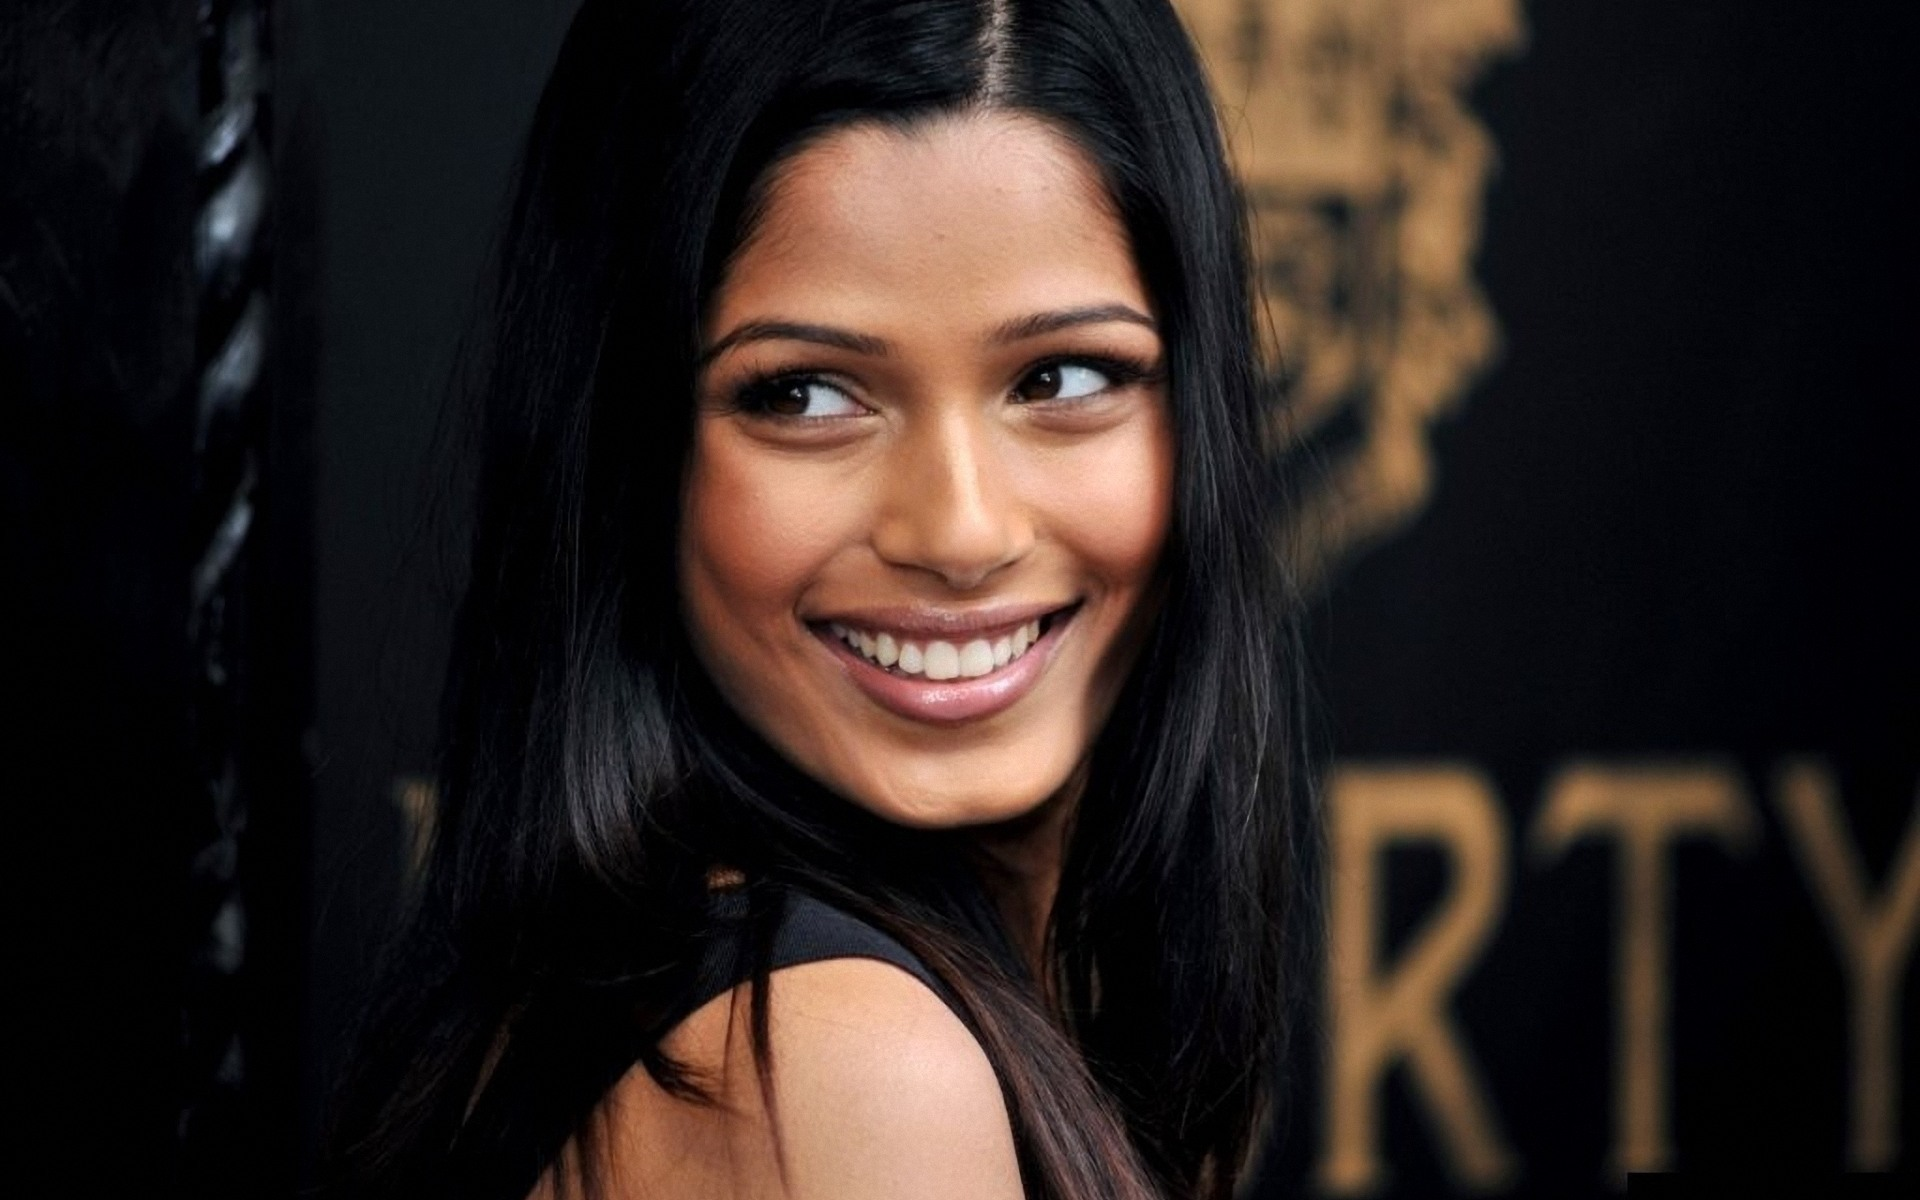 Freida Pinto Wallpapers Images Photos Pictures Backgrounds Freida Pinto